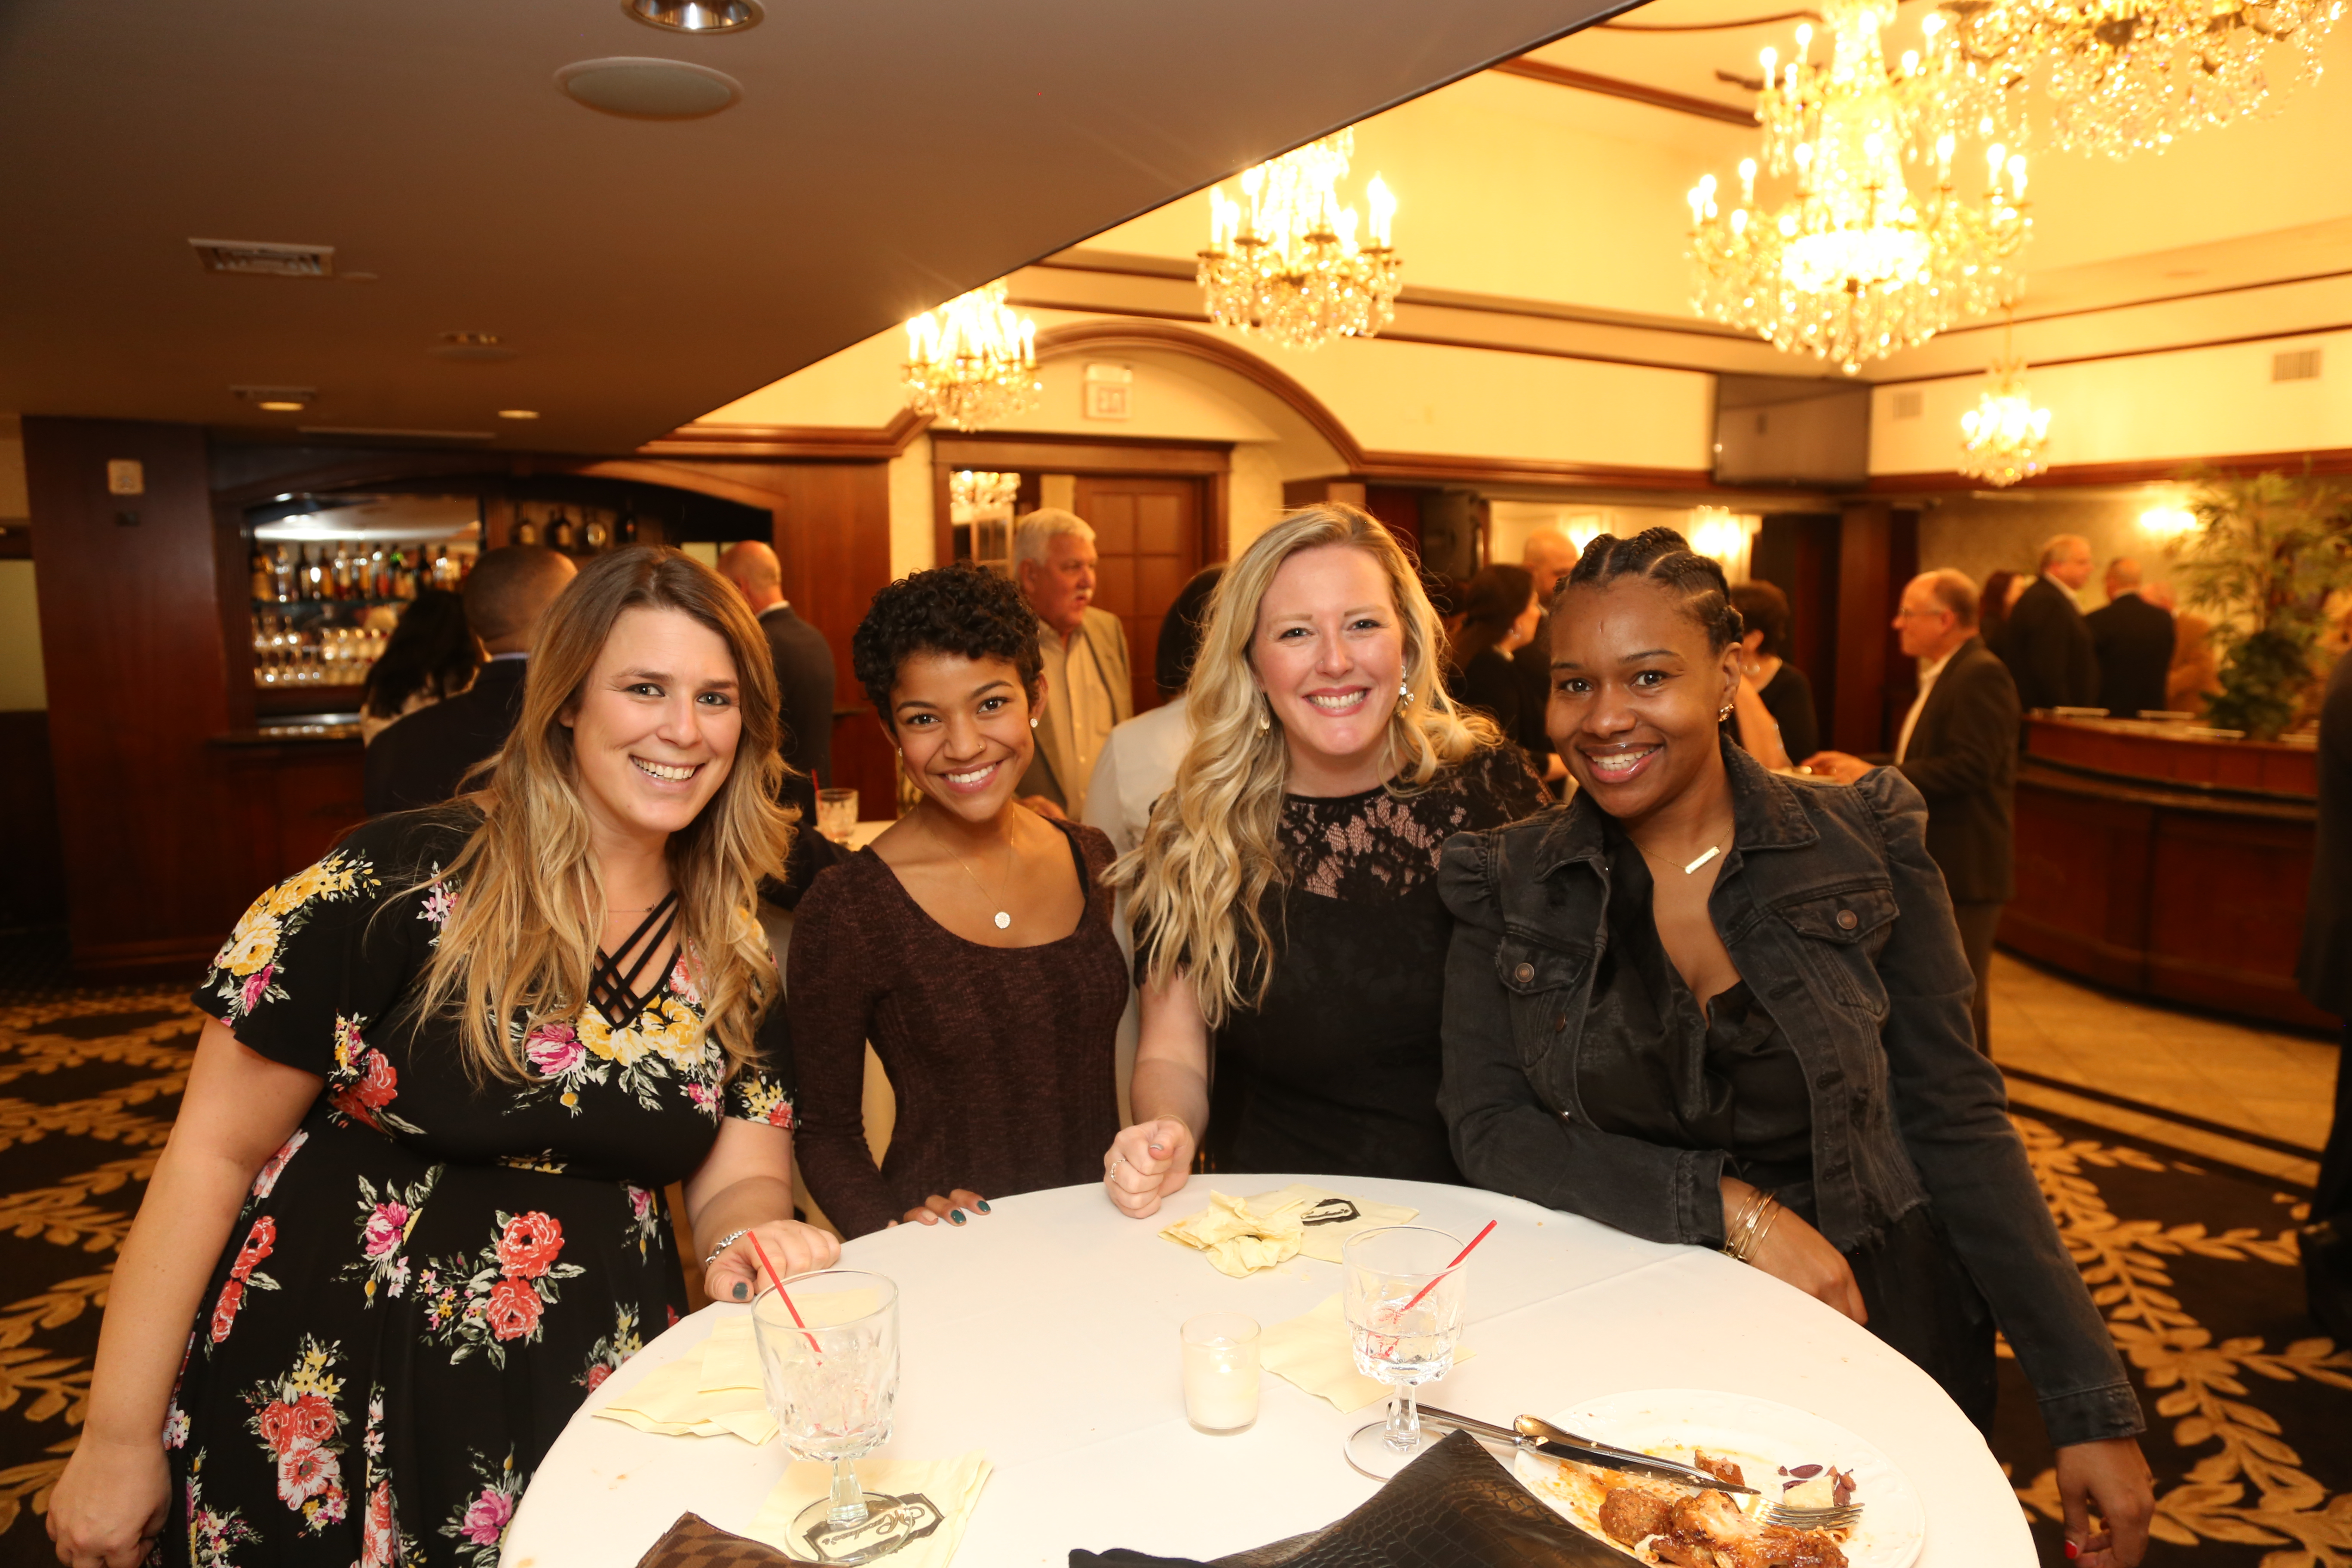 CBH Care 50th Anniversary Gala Honors Mission of Mental and Behavioral Healthcare; Draws Hundreds of Attendees